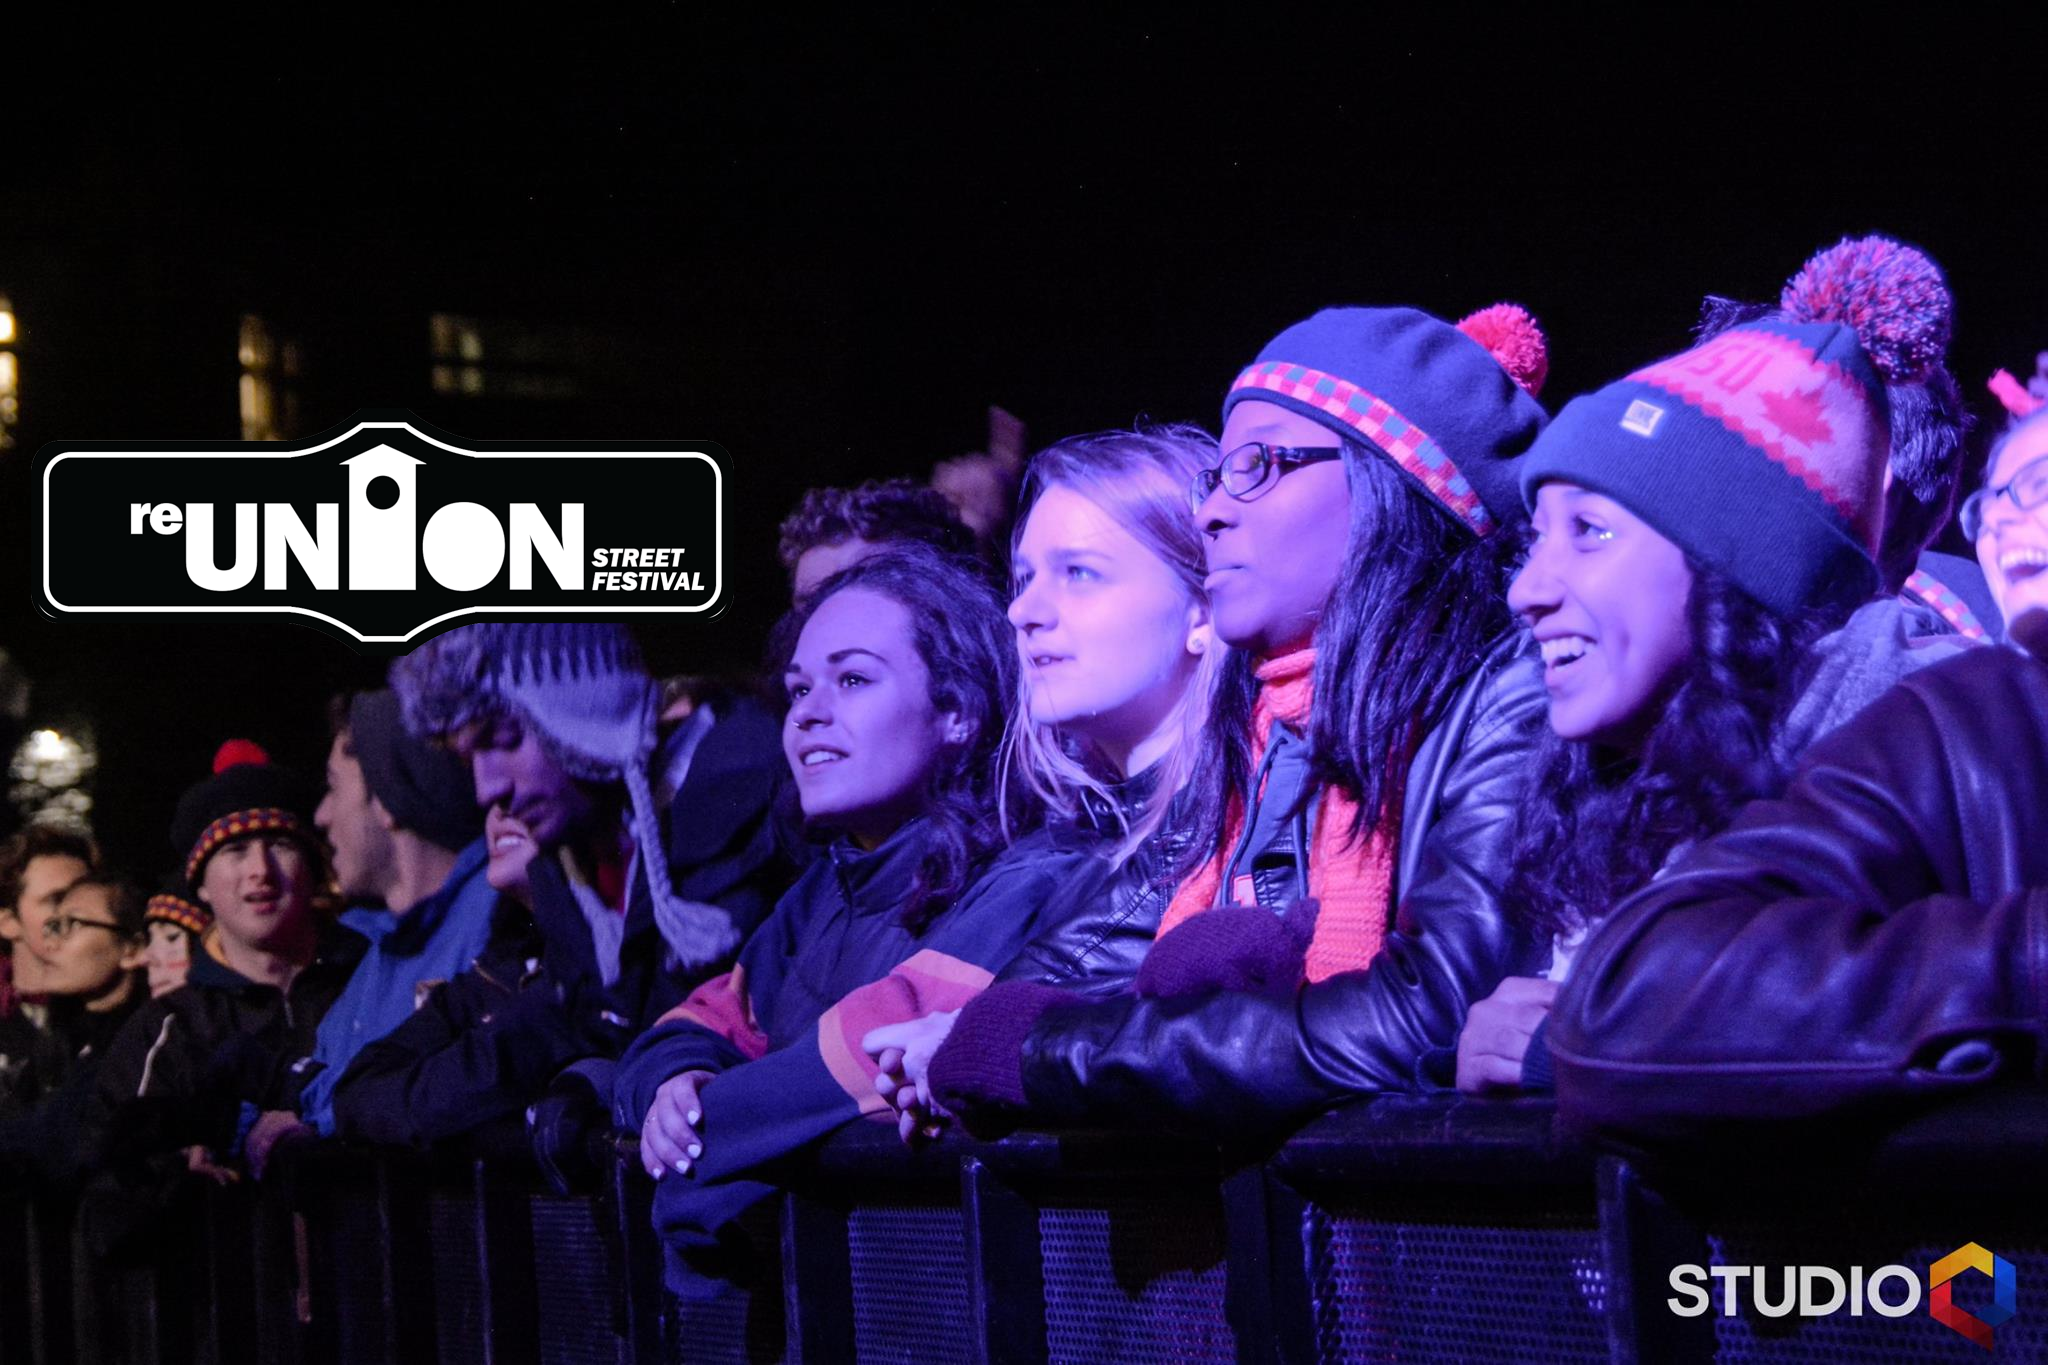 Image of students watching the reunion street festival concert in the front row